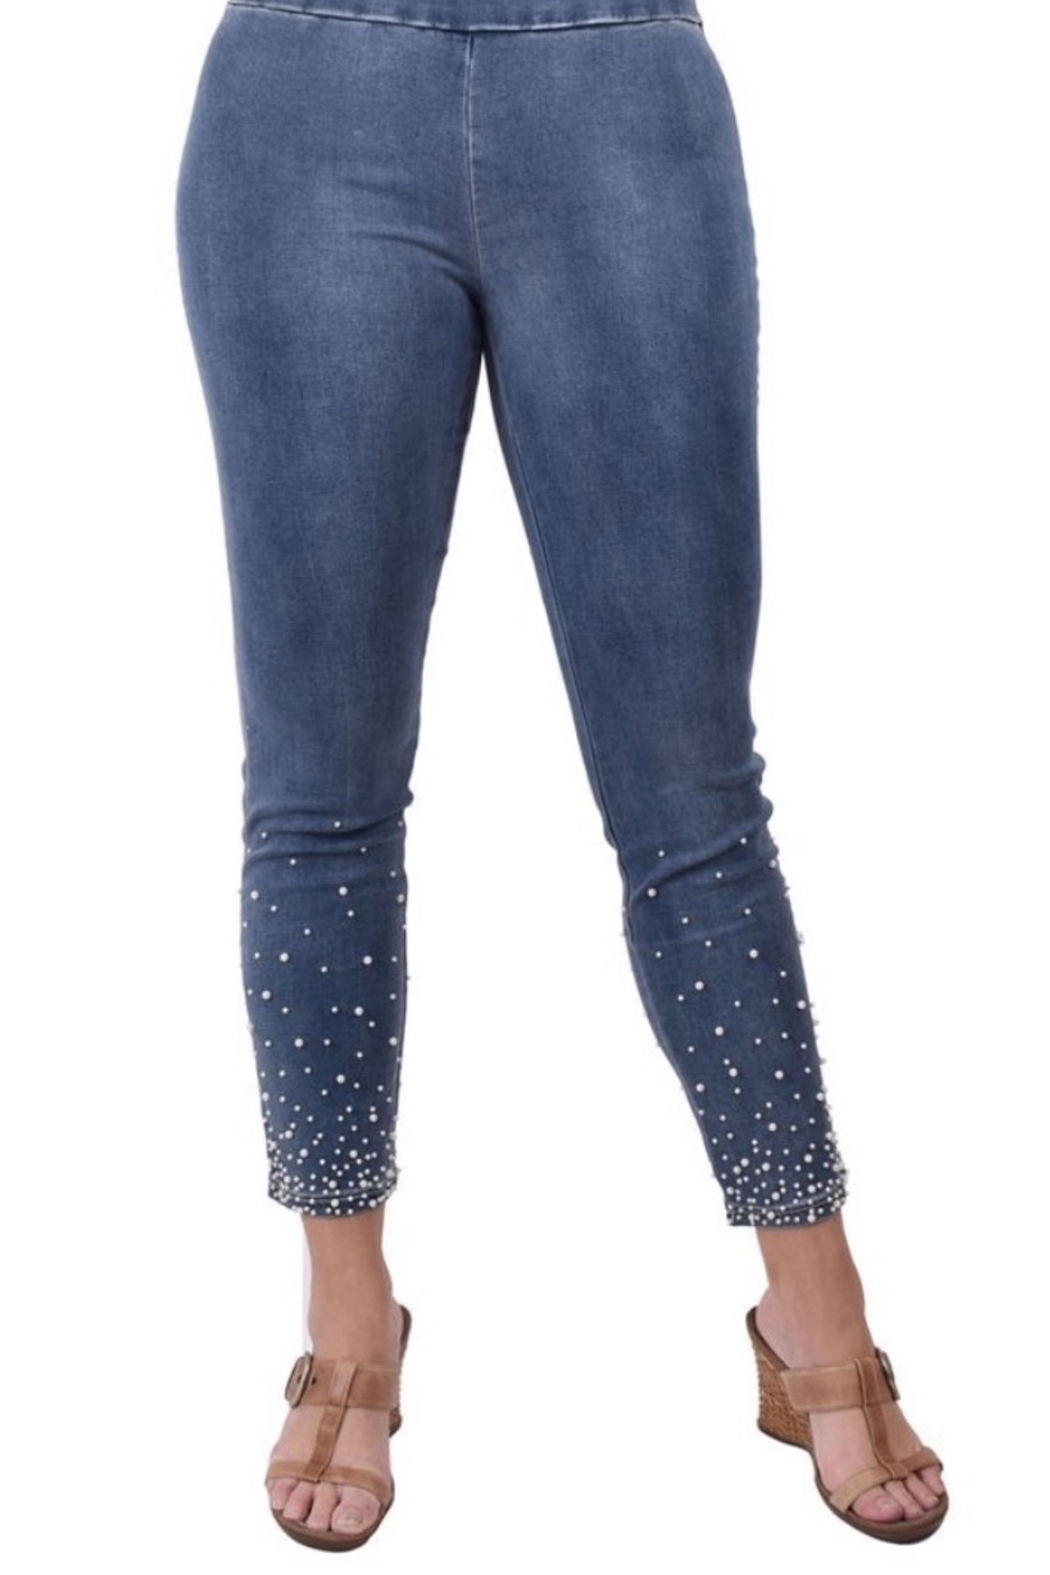 Ethyl Fitted jeans with pearl jeans - Main Image